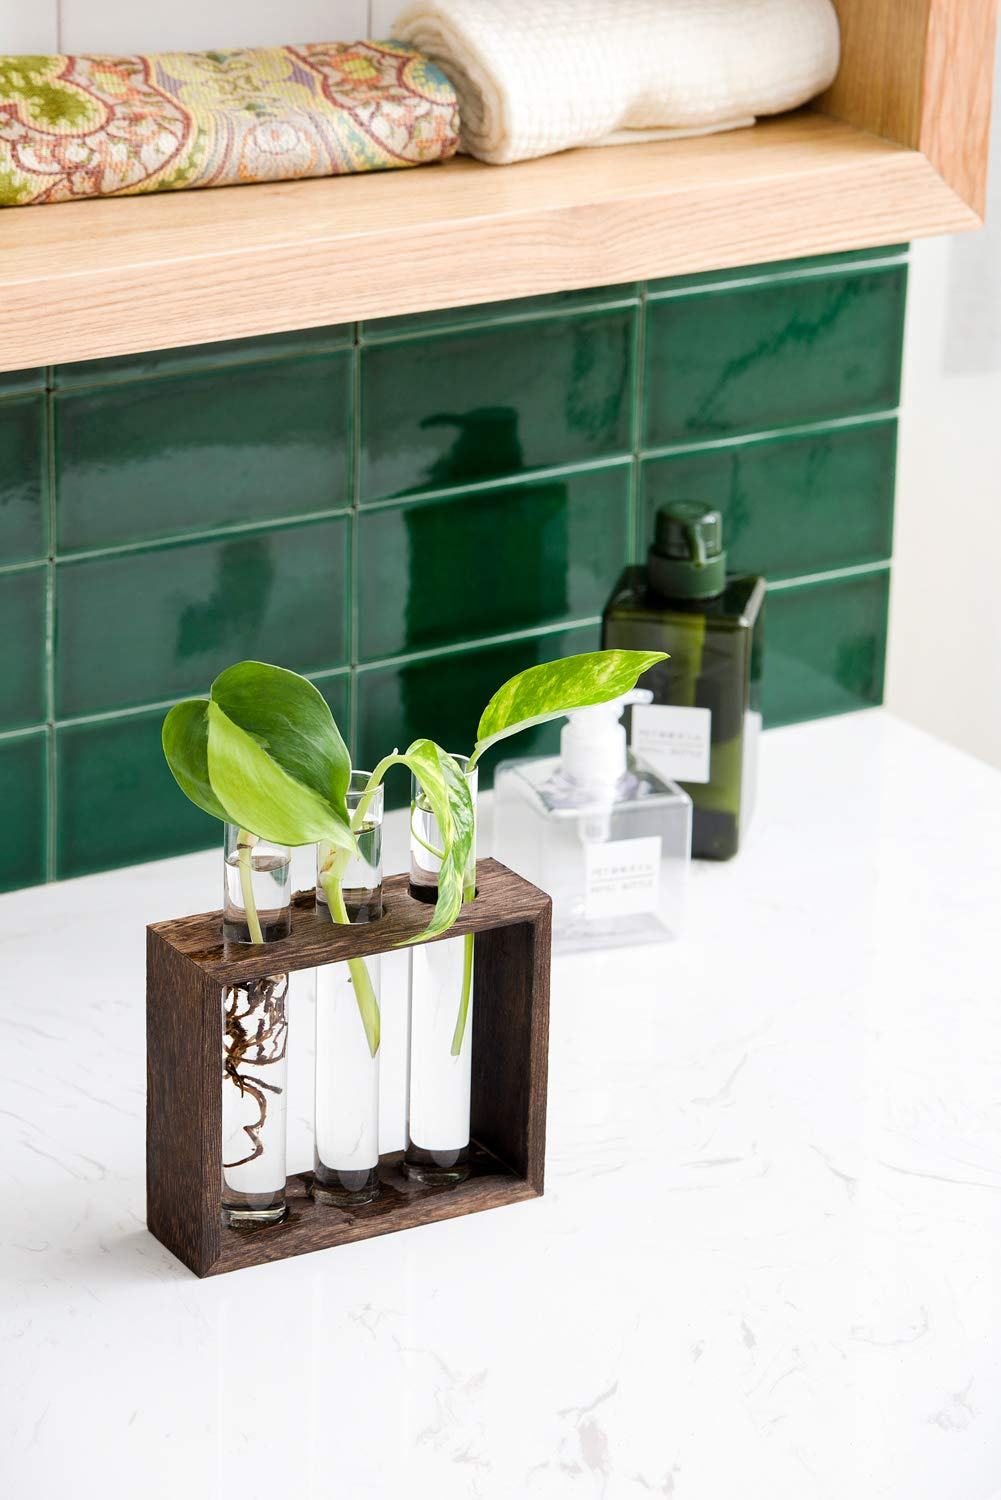 Mkono Wall Hanging Glass Planter Propagation Station Modern Flower Bud Vase in Vintage Wood Stand Rack with 5 Test Tube Tabletop Terrarium for Propagating Hydroponics Plants Home Office Decoration